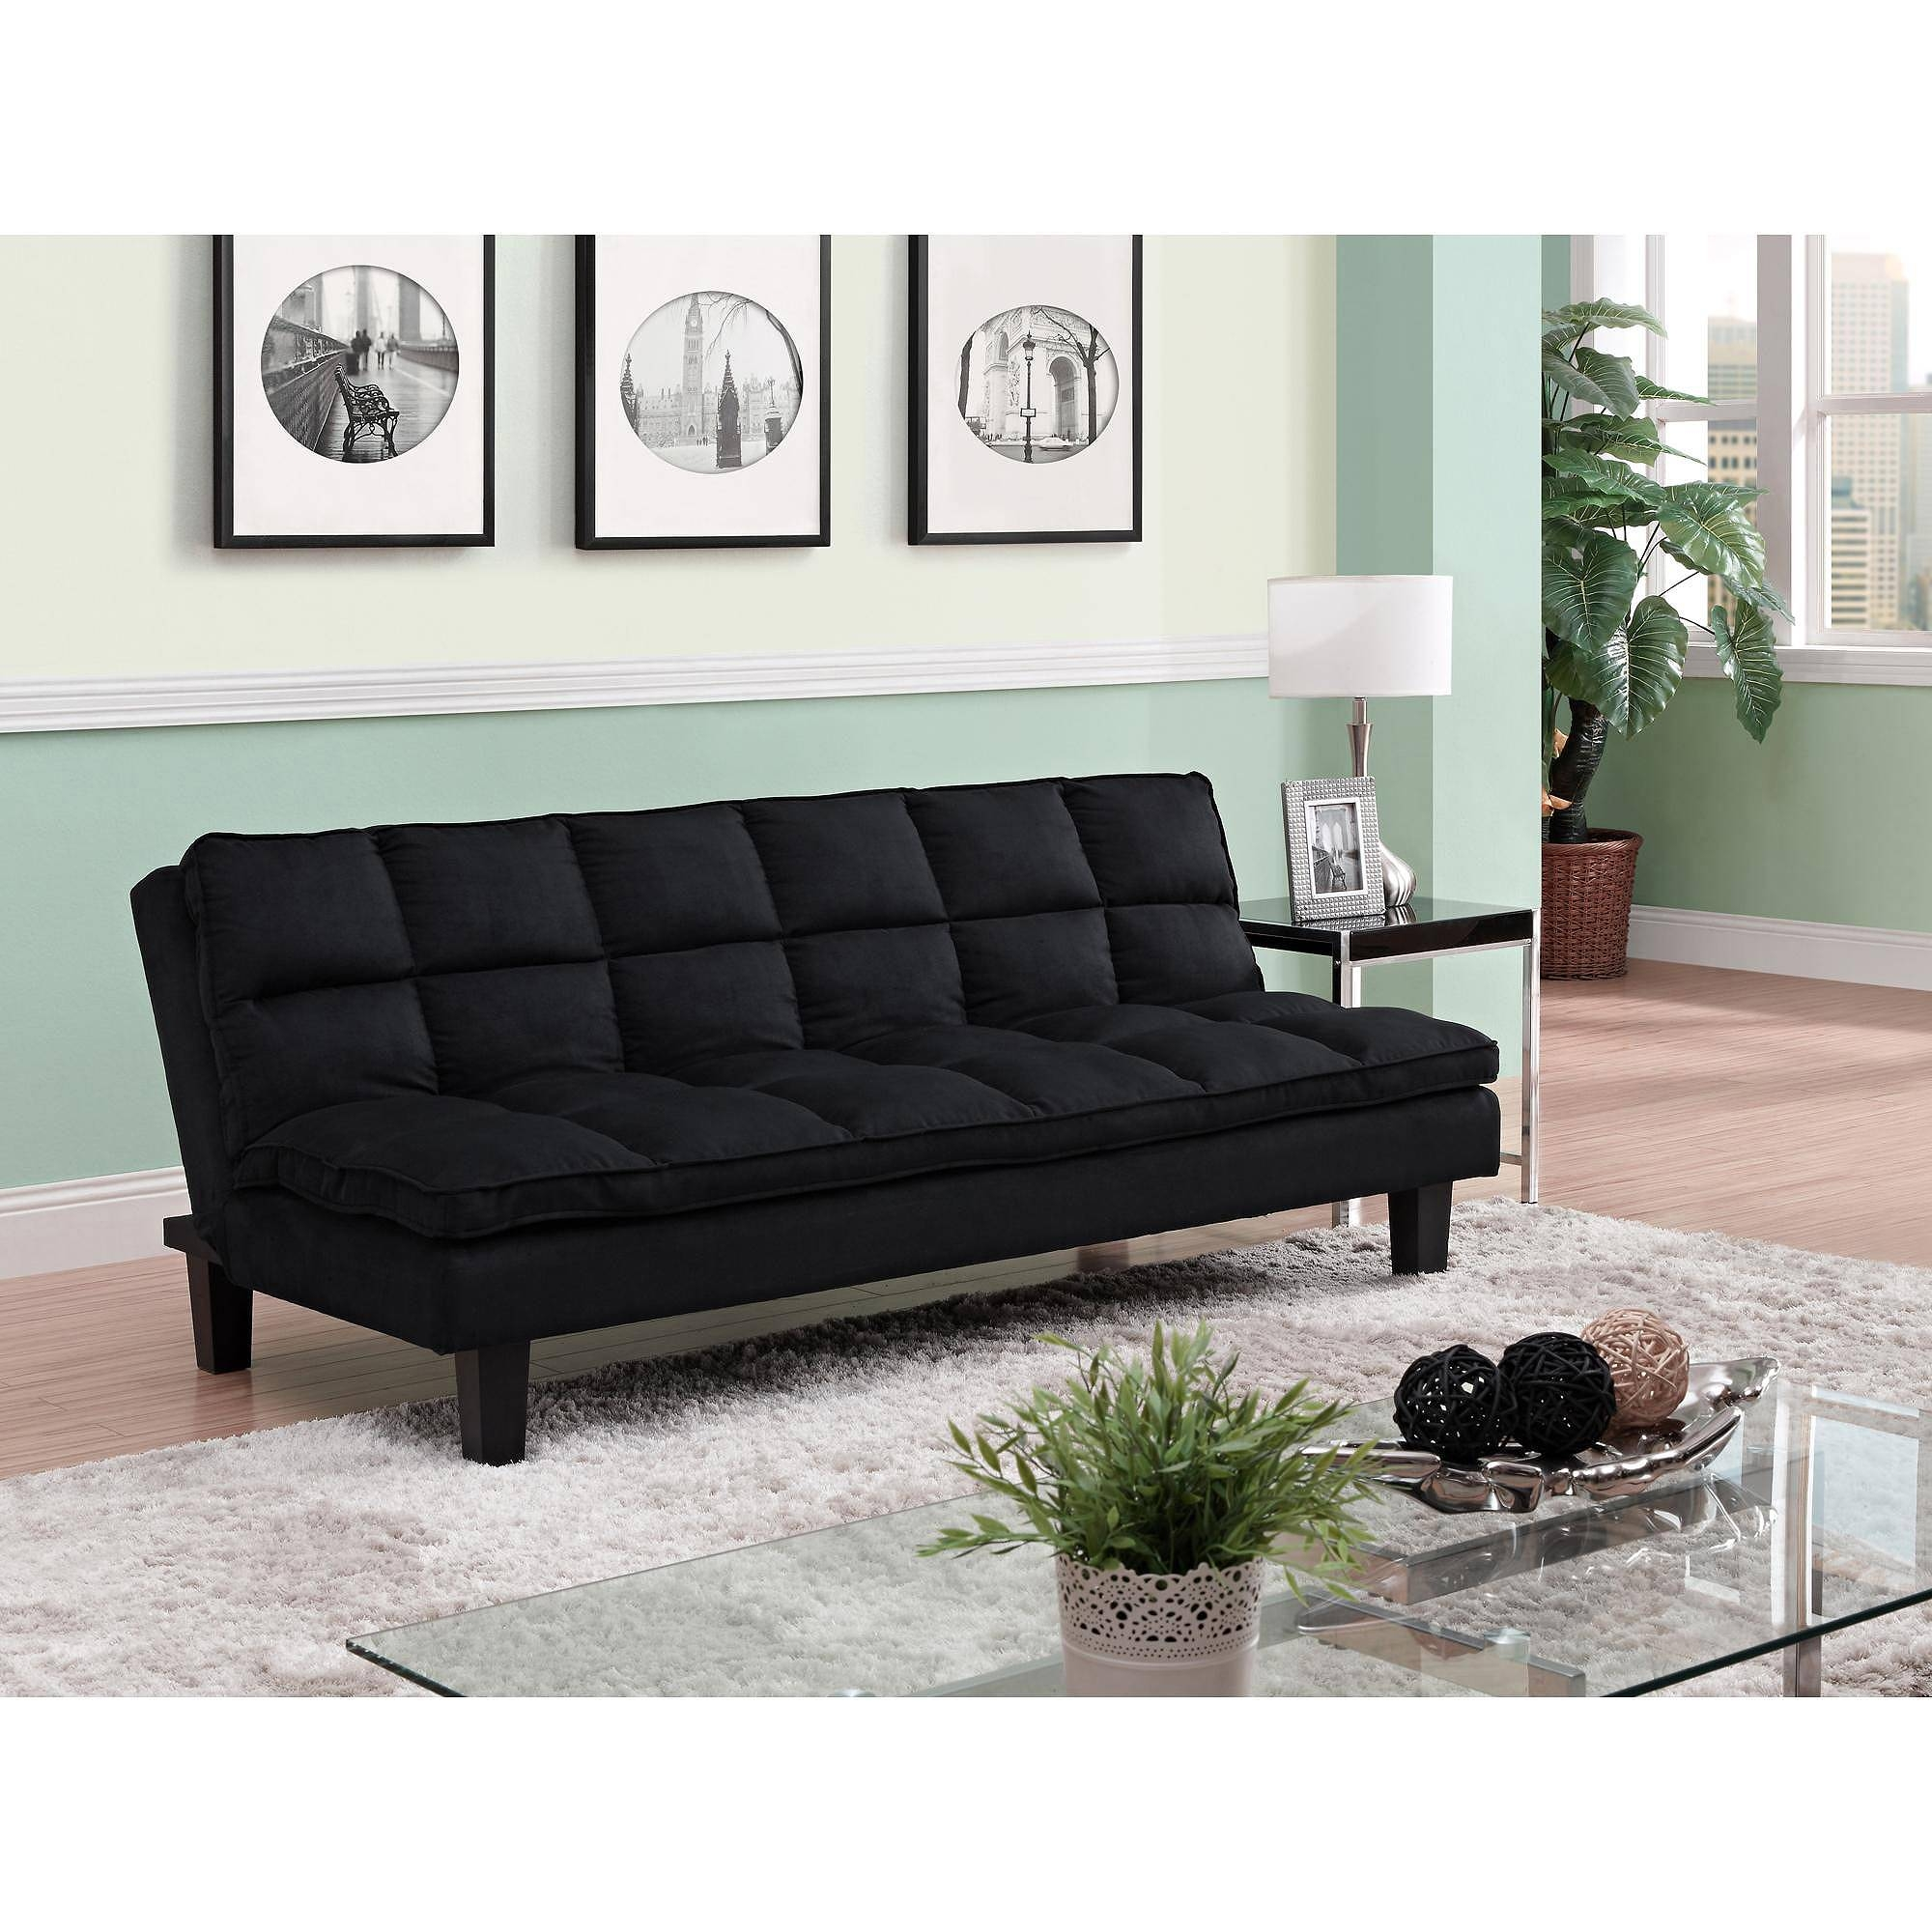 Great Luxury Sofa Beds 72 Sofa Table Ideas With Luxury Sofa Beds regarding Luxury  Sofa Beds